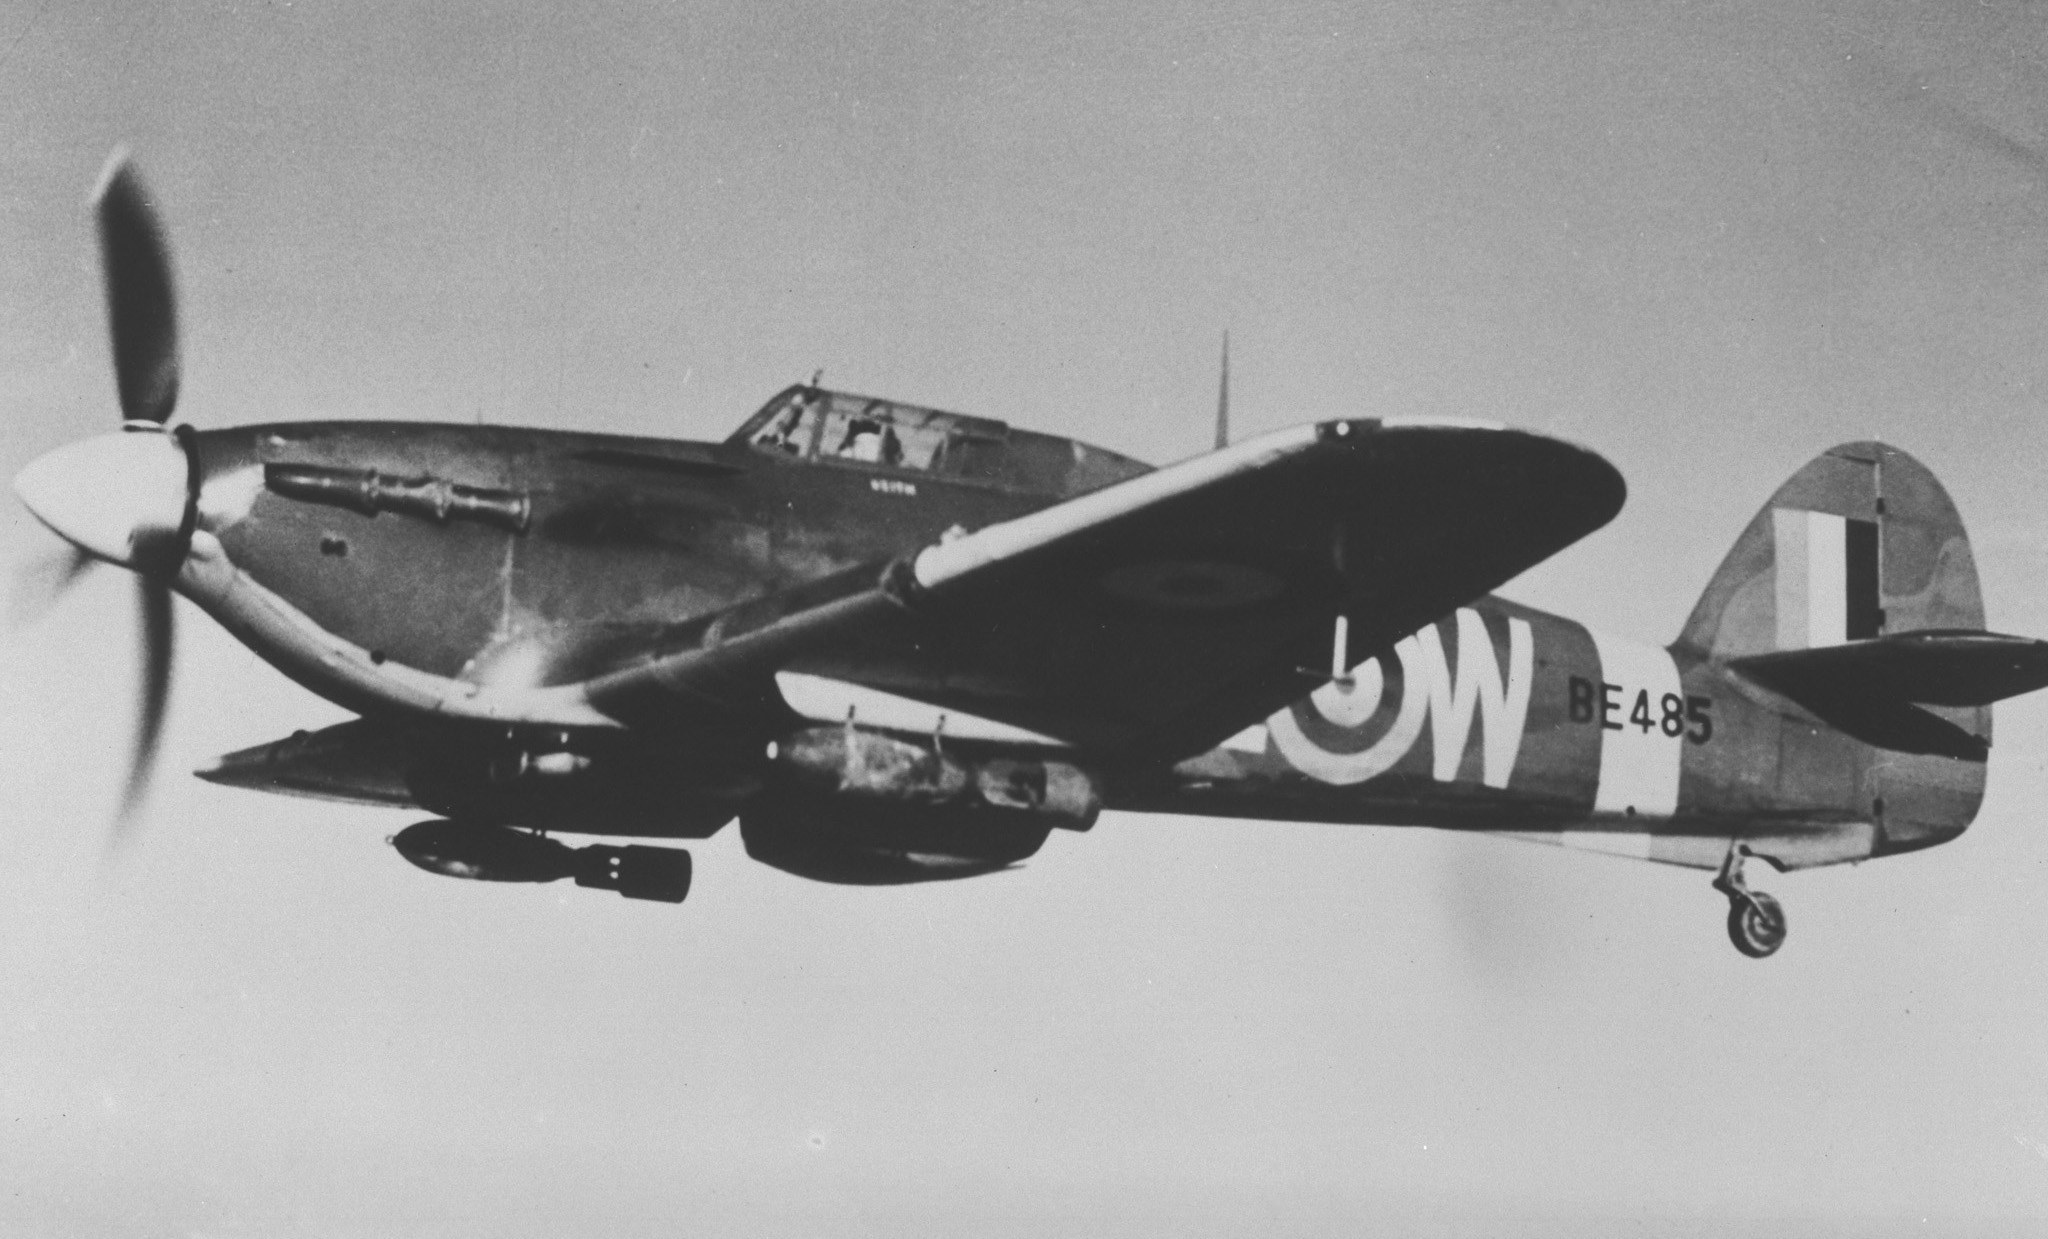 A Hawker Hurricane Mk IIB from 402 (Fighter) Squadron crosses the English Channel on an intruder sortie into occupied France in 1941. It carries 250 pound bombs slung under its wings PHOTO: DND Archives, PL-6897